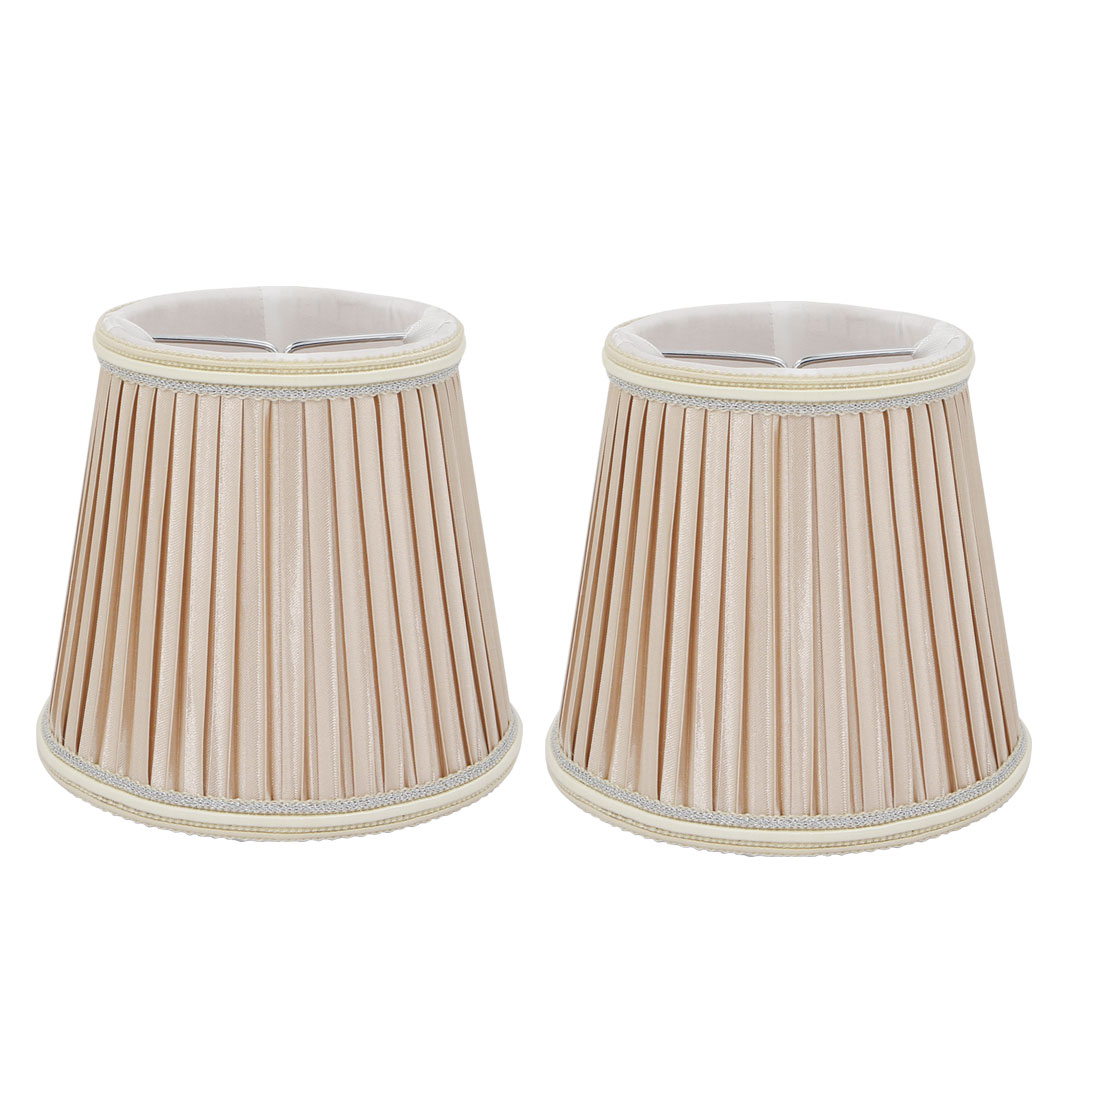 2pcs Wall Shade Lampshade Chandelier Clip-On LampShade Beige Fabric-Covered by